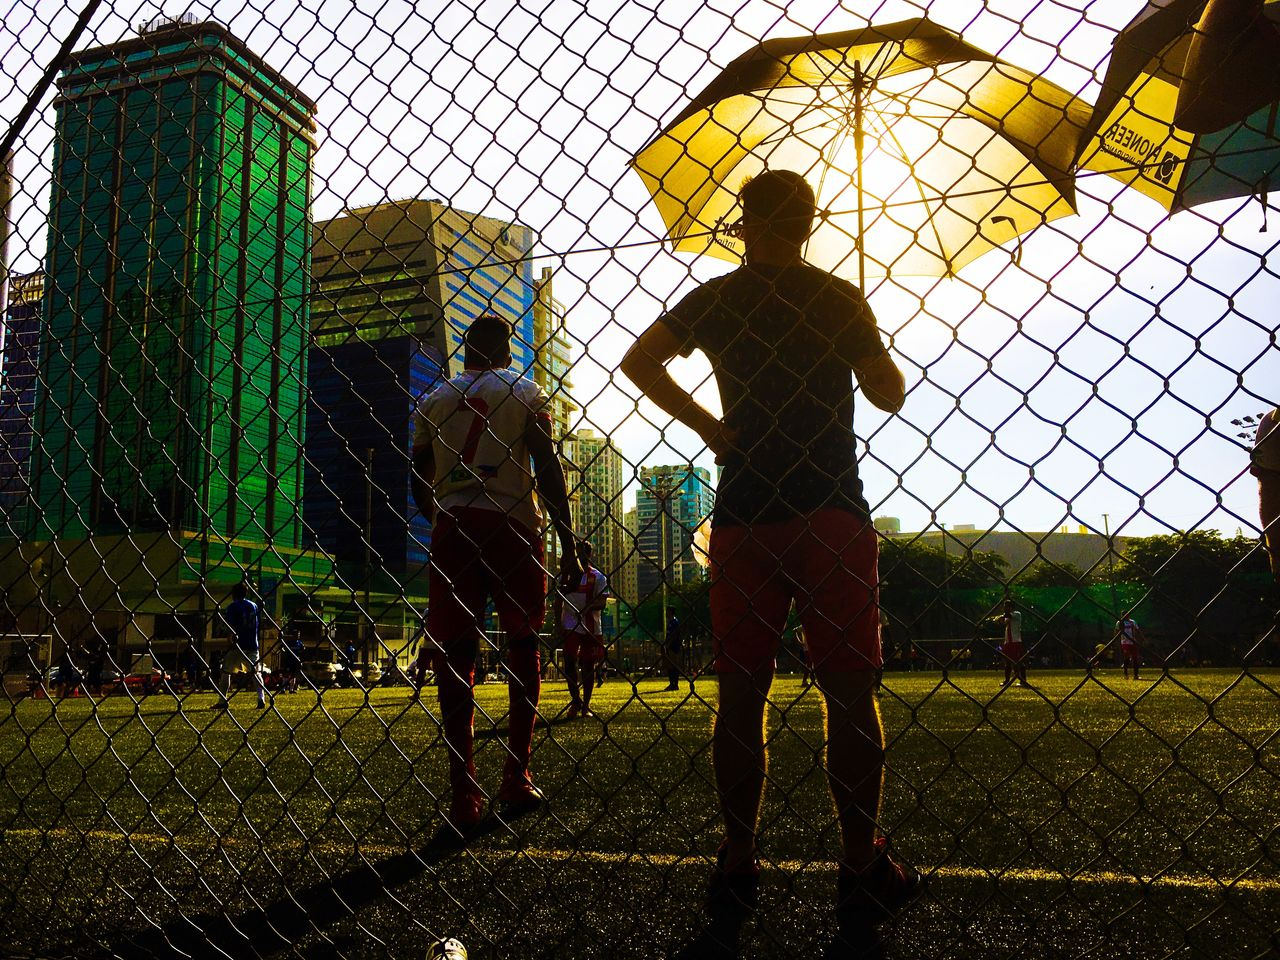 chainlink fence, sport, teamwork, real people, soccer, standing, sports team, men, competition, rear view, full length, togetherness, lifestyles, playing, activity, only men, playing field, goalie, leisure activity, competitive sport, soccer player, sportsman, team sport, match - sport, soccer field, adult, sports clothing, day, people, sky, outdoors, grass, goal post, adults only